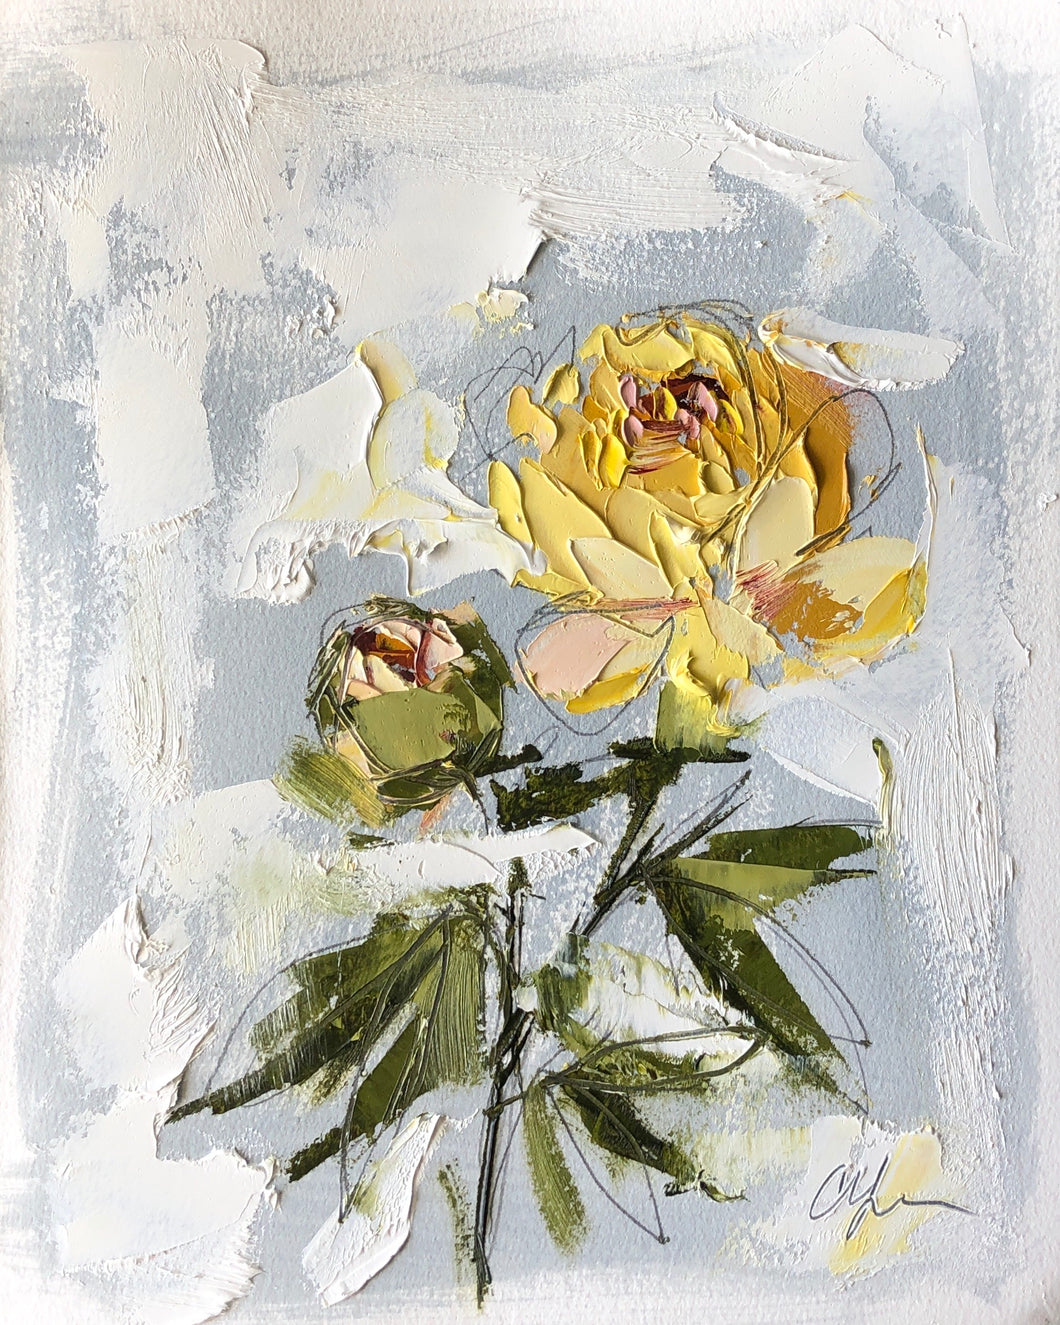 """PEONY VIGNETTE XXXIII"" 16.5x13.5 (10x8) Oil/Graphite on Paper"